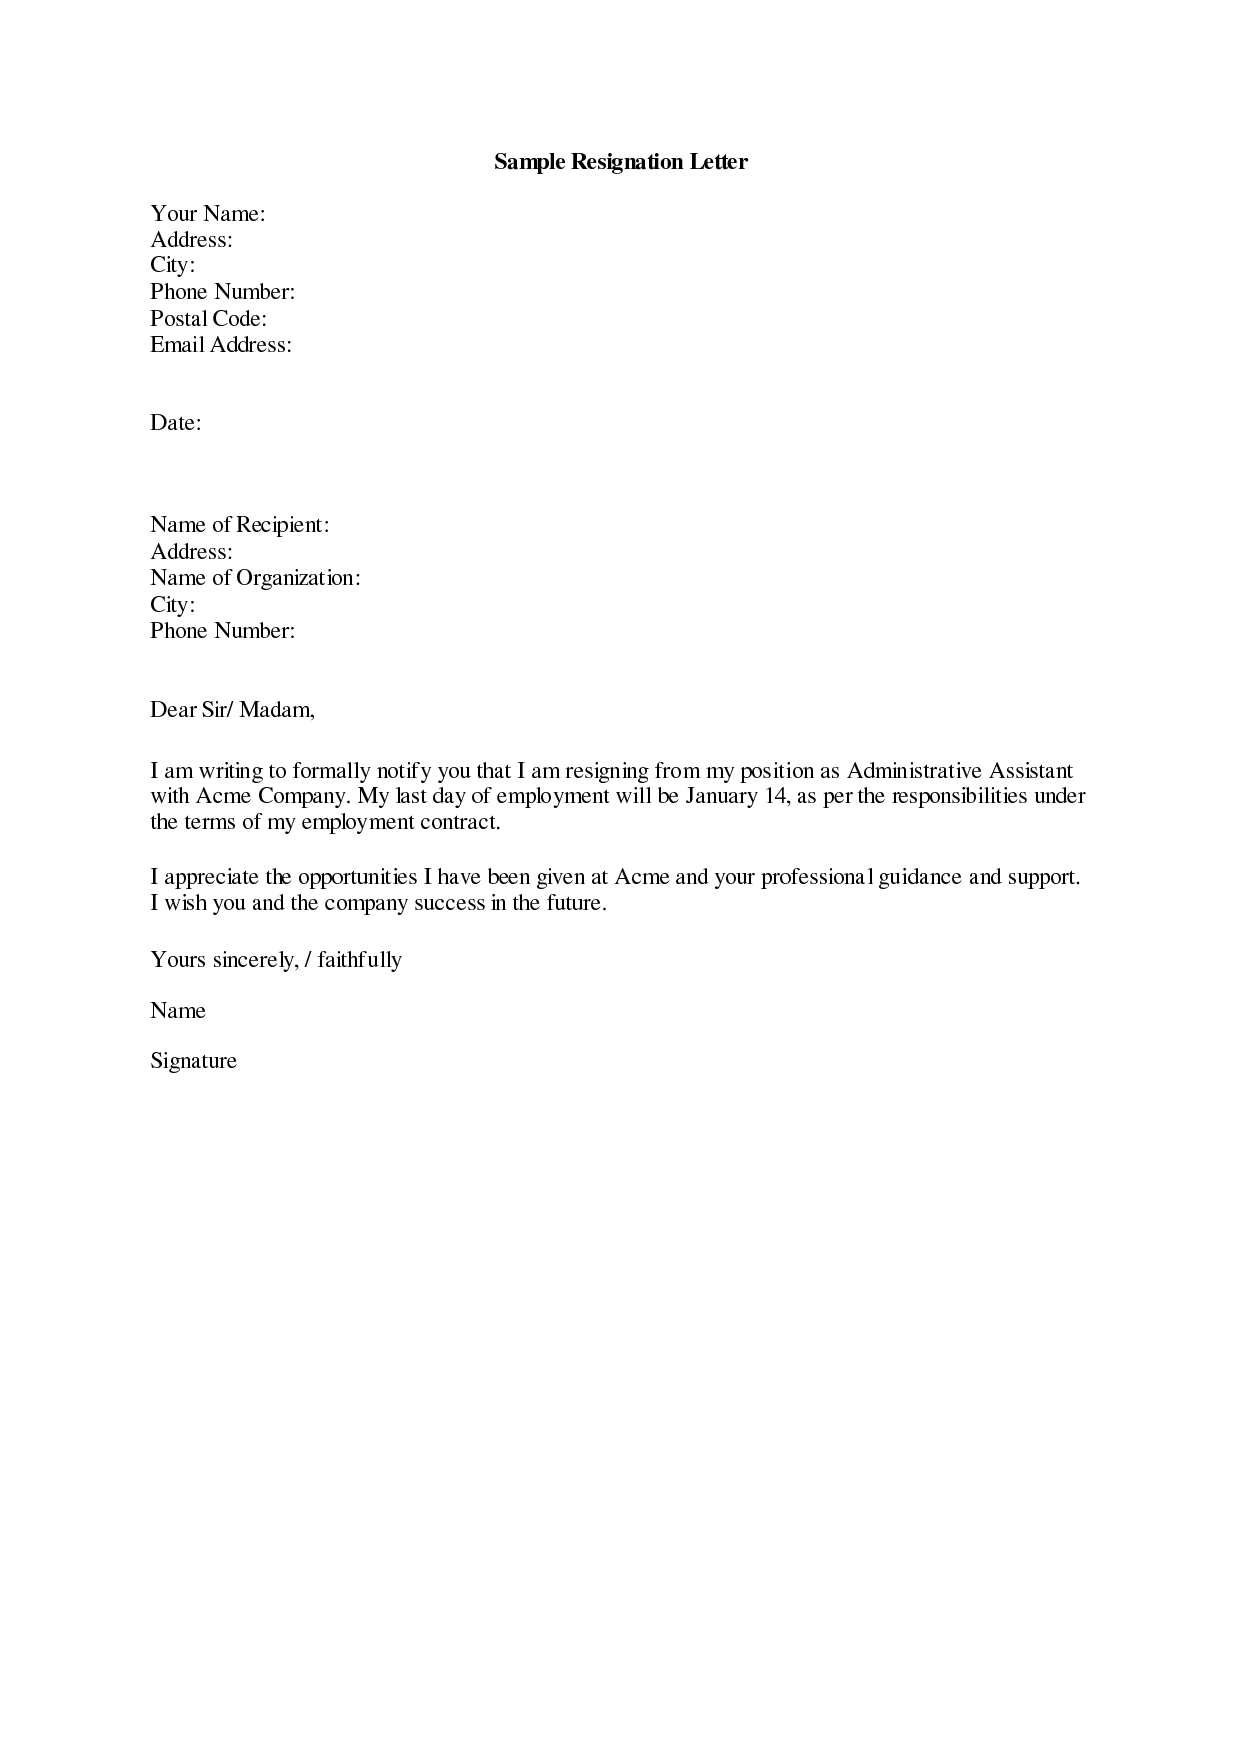 Resignation letter sample 19 letter of resignation ankit resignation letter sample 19 letter of resignation spiritdancerdesigns